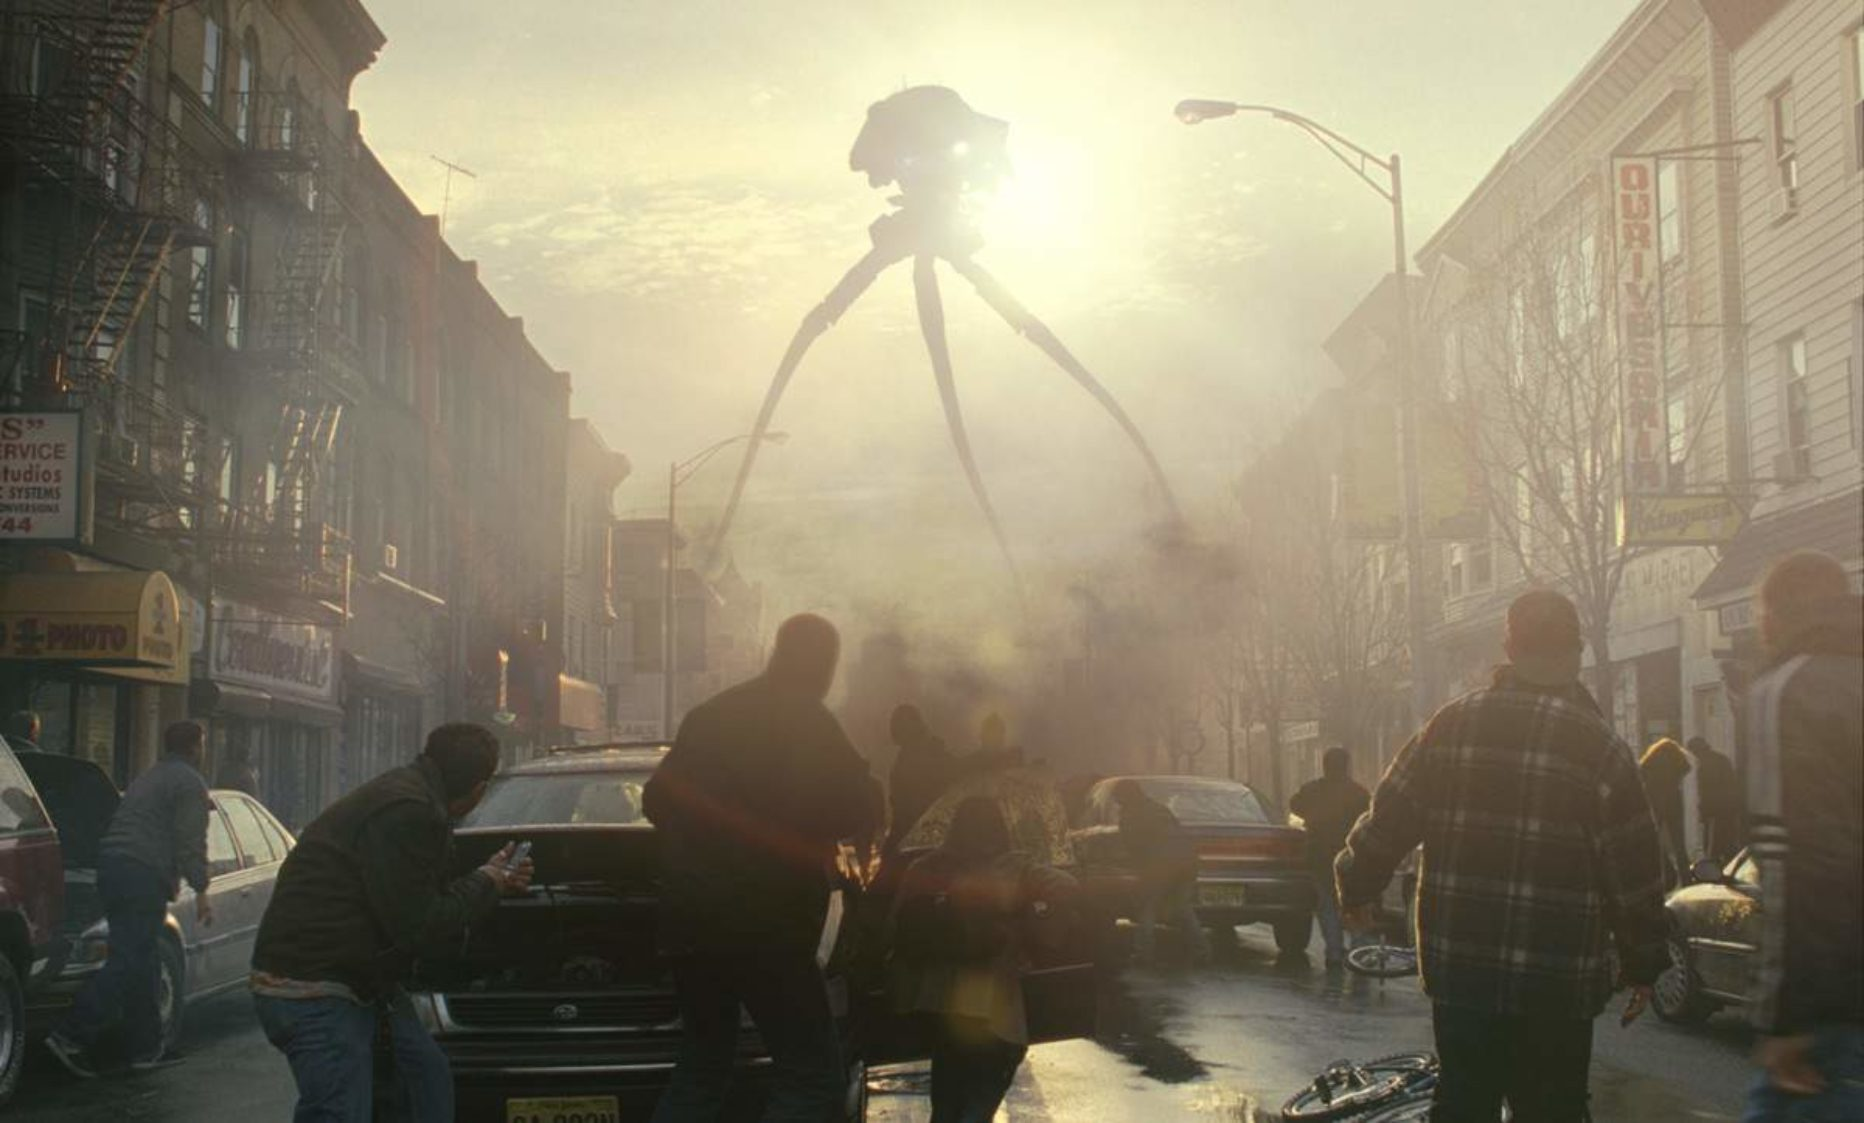 The Martian war machines in War of the Worlds (2005)